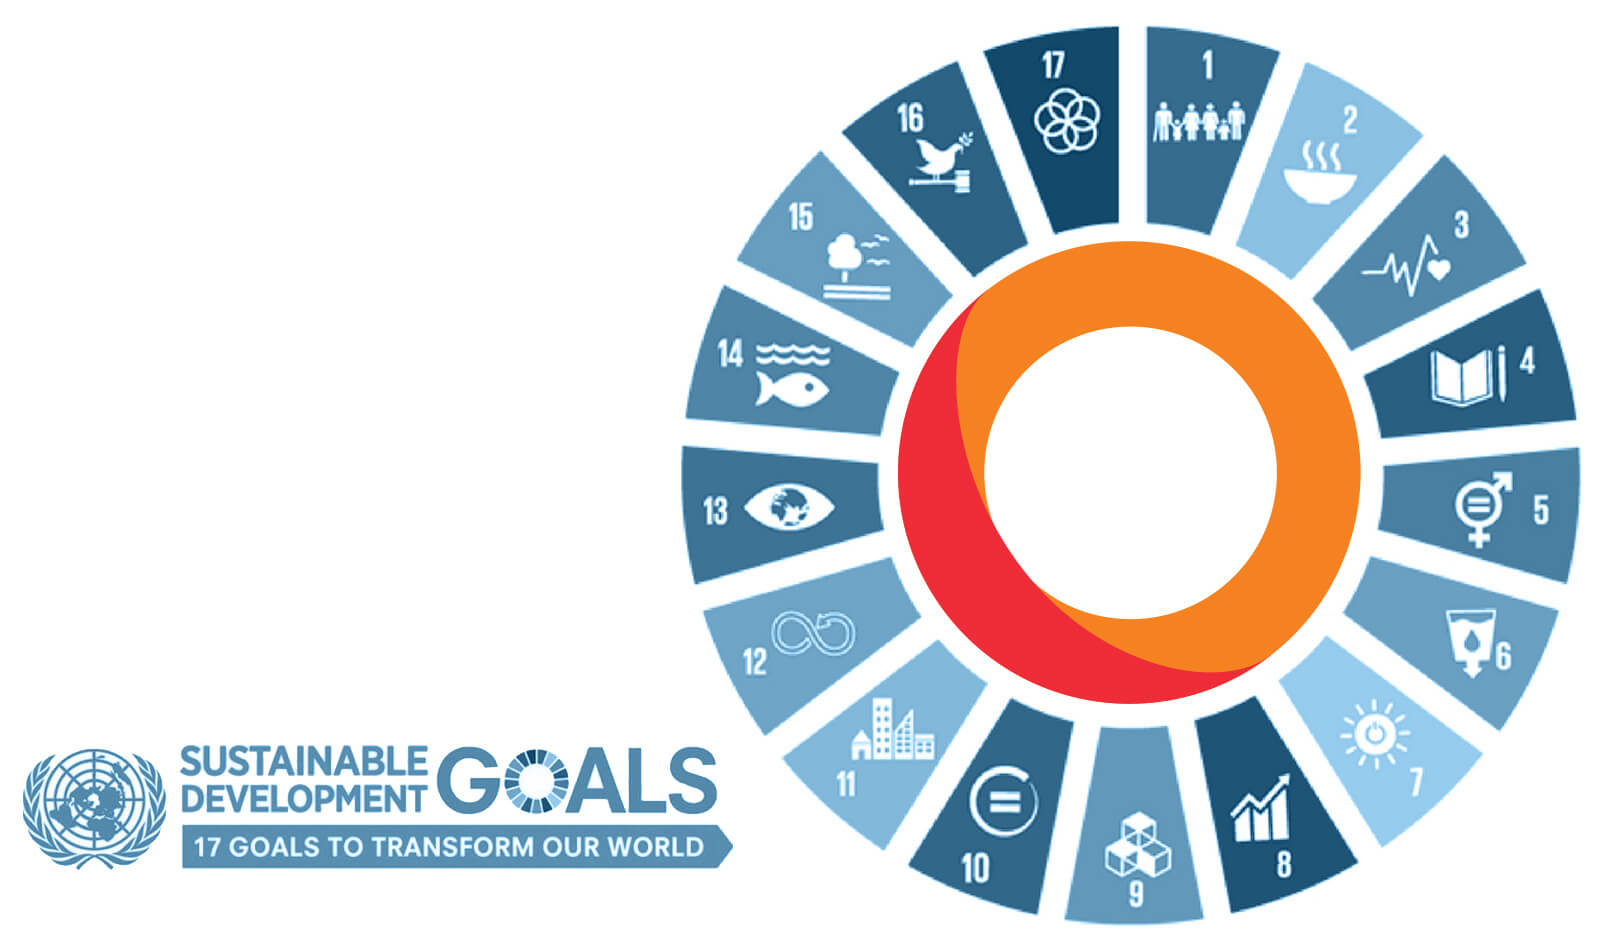 KORE supports the United Nations Sustainable Development Goals